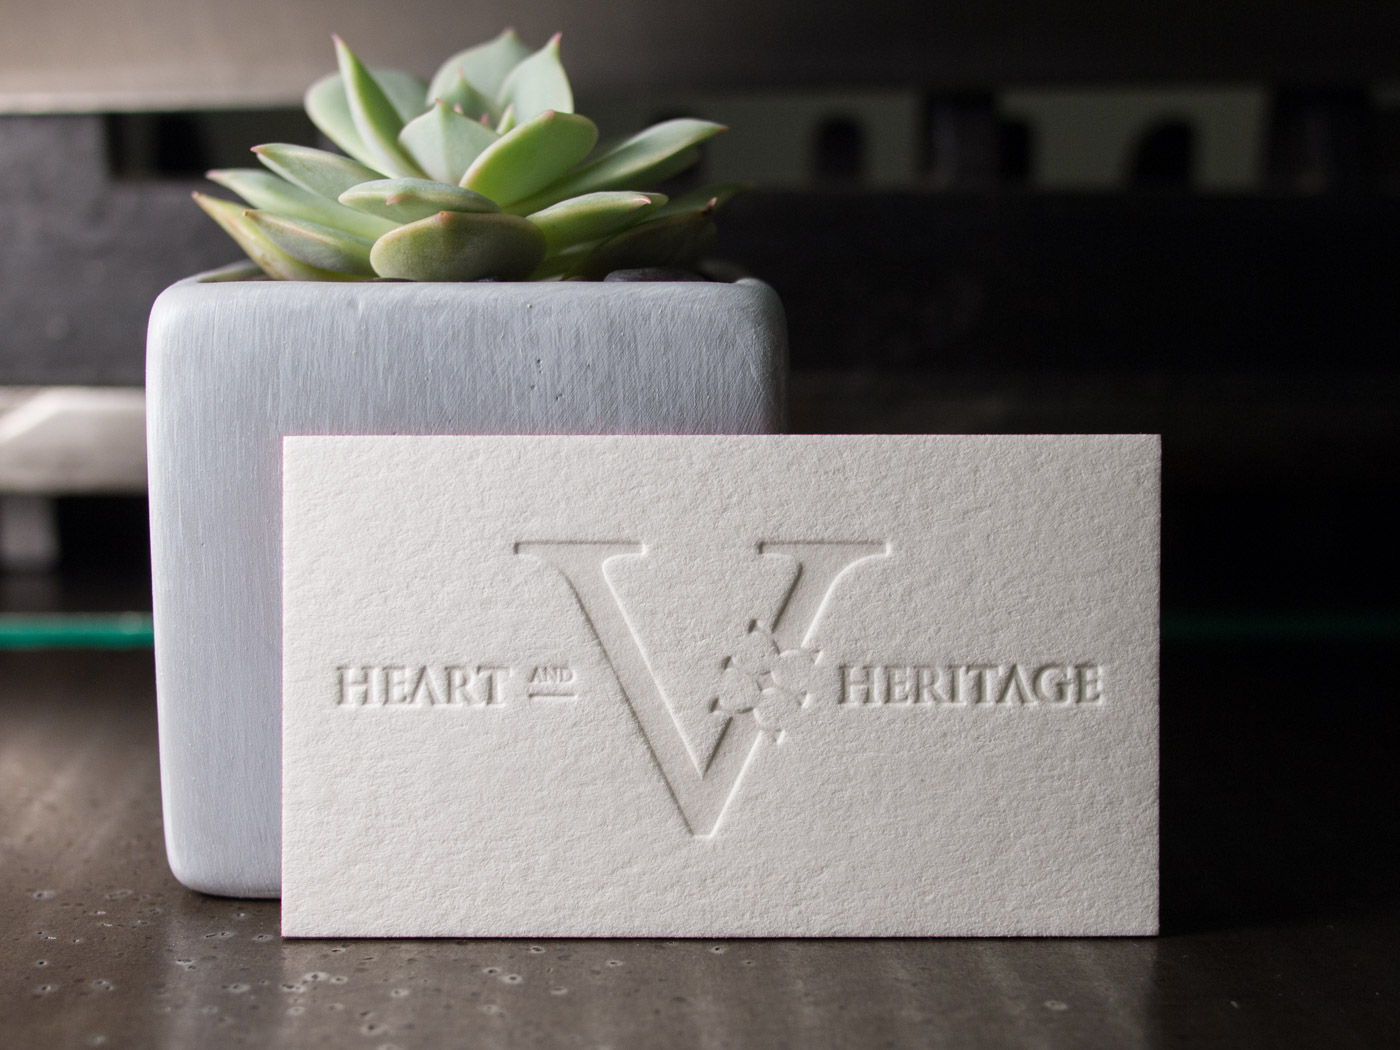 Virile Heart and Heritage | Printed by Parklife Press